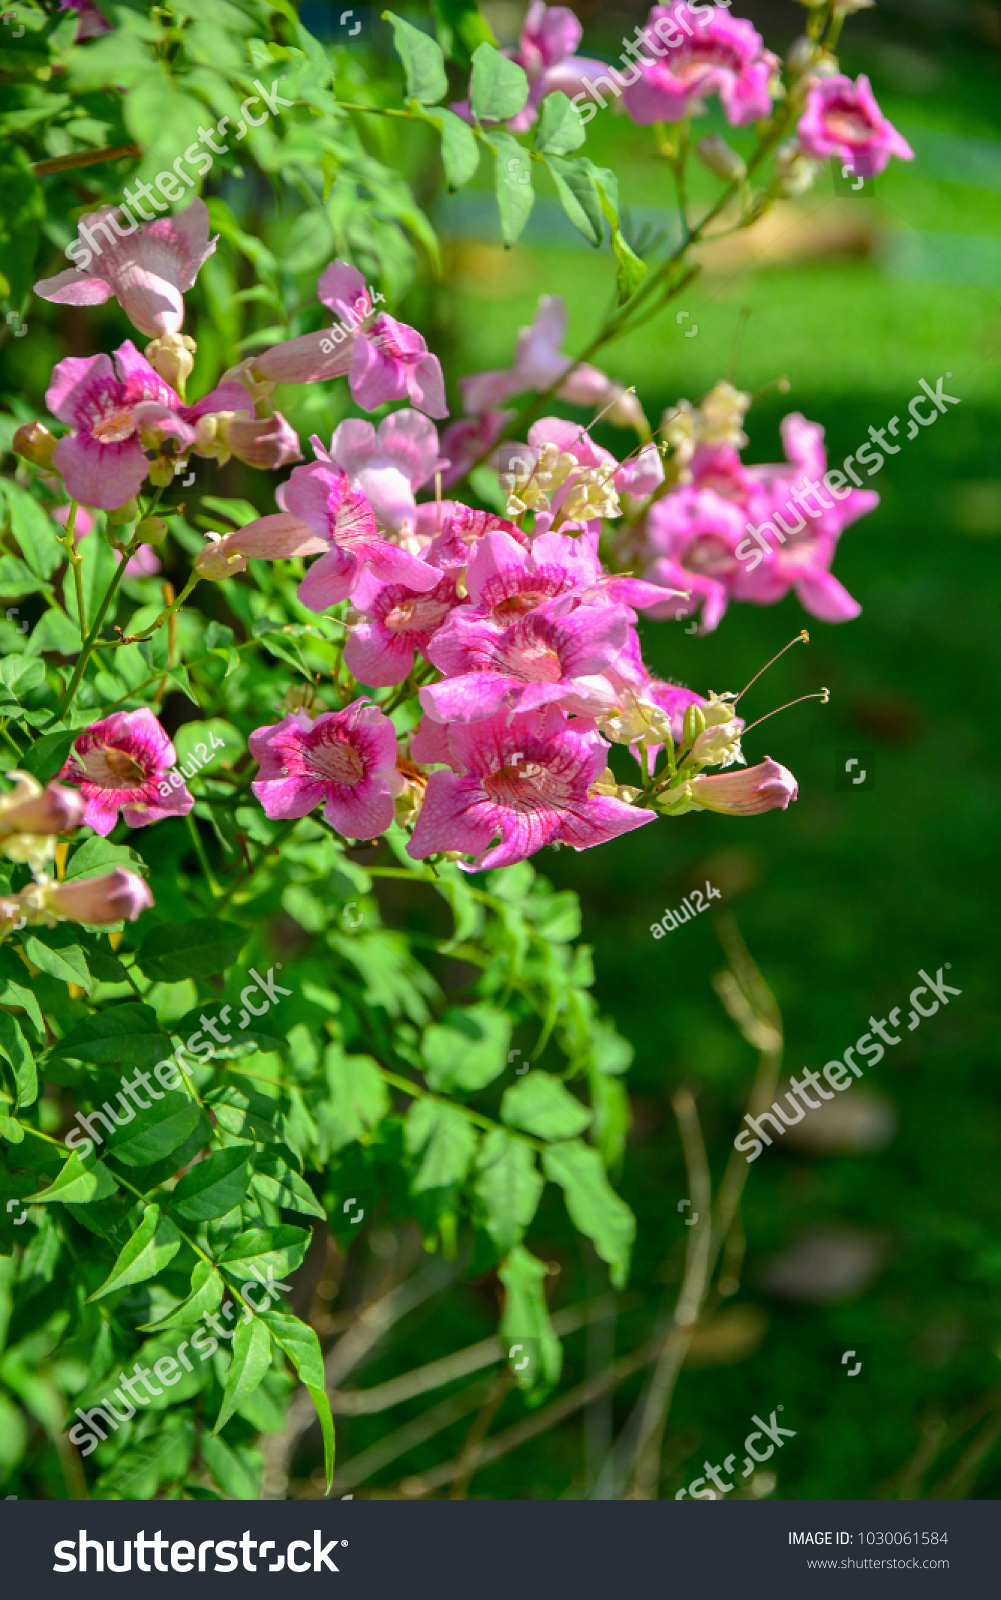 Trumpet Vine Flower Or Pink Podranea Ricasoliana Blooming In The